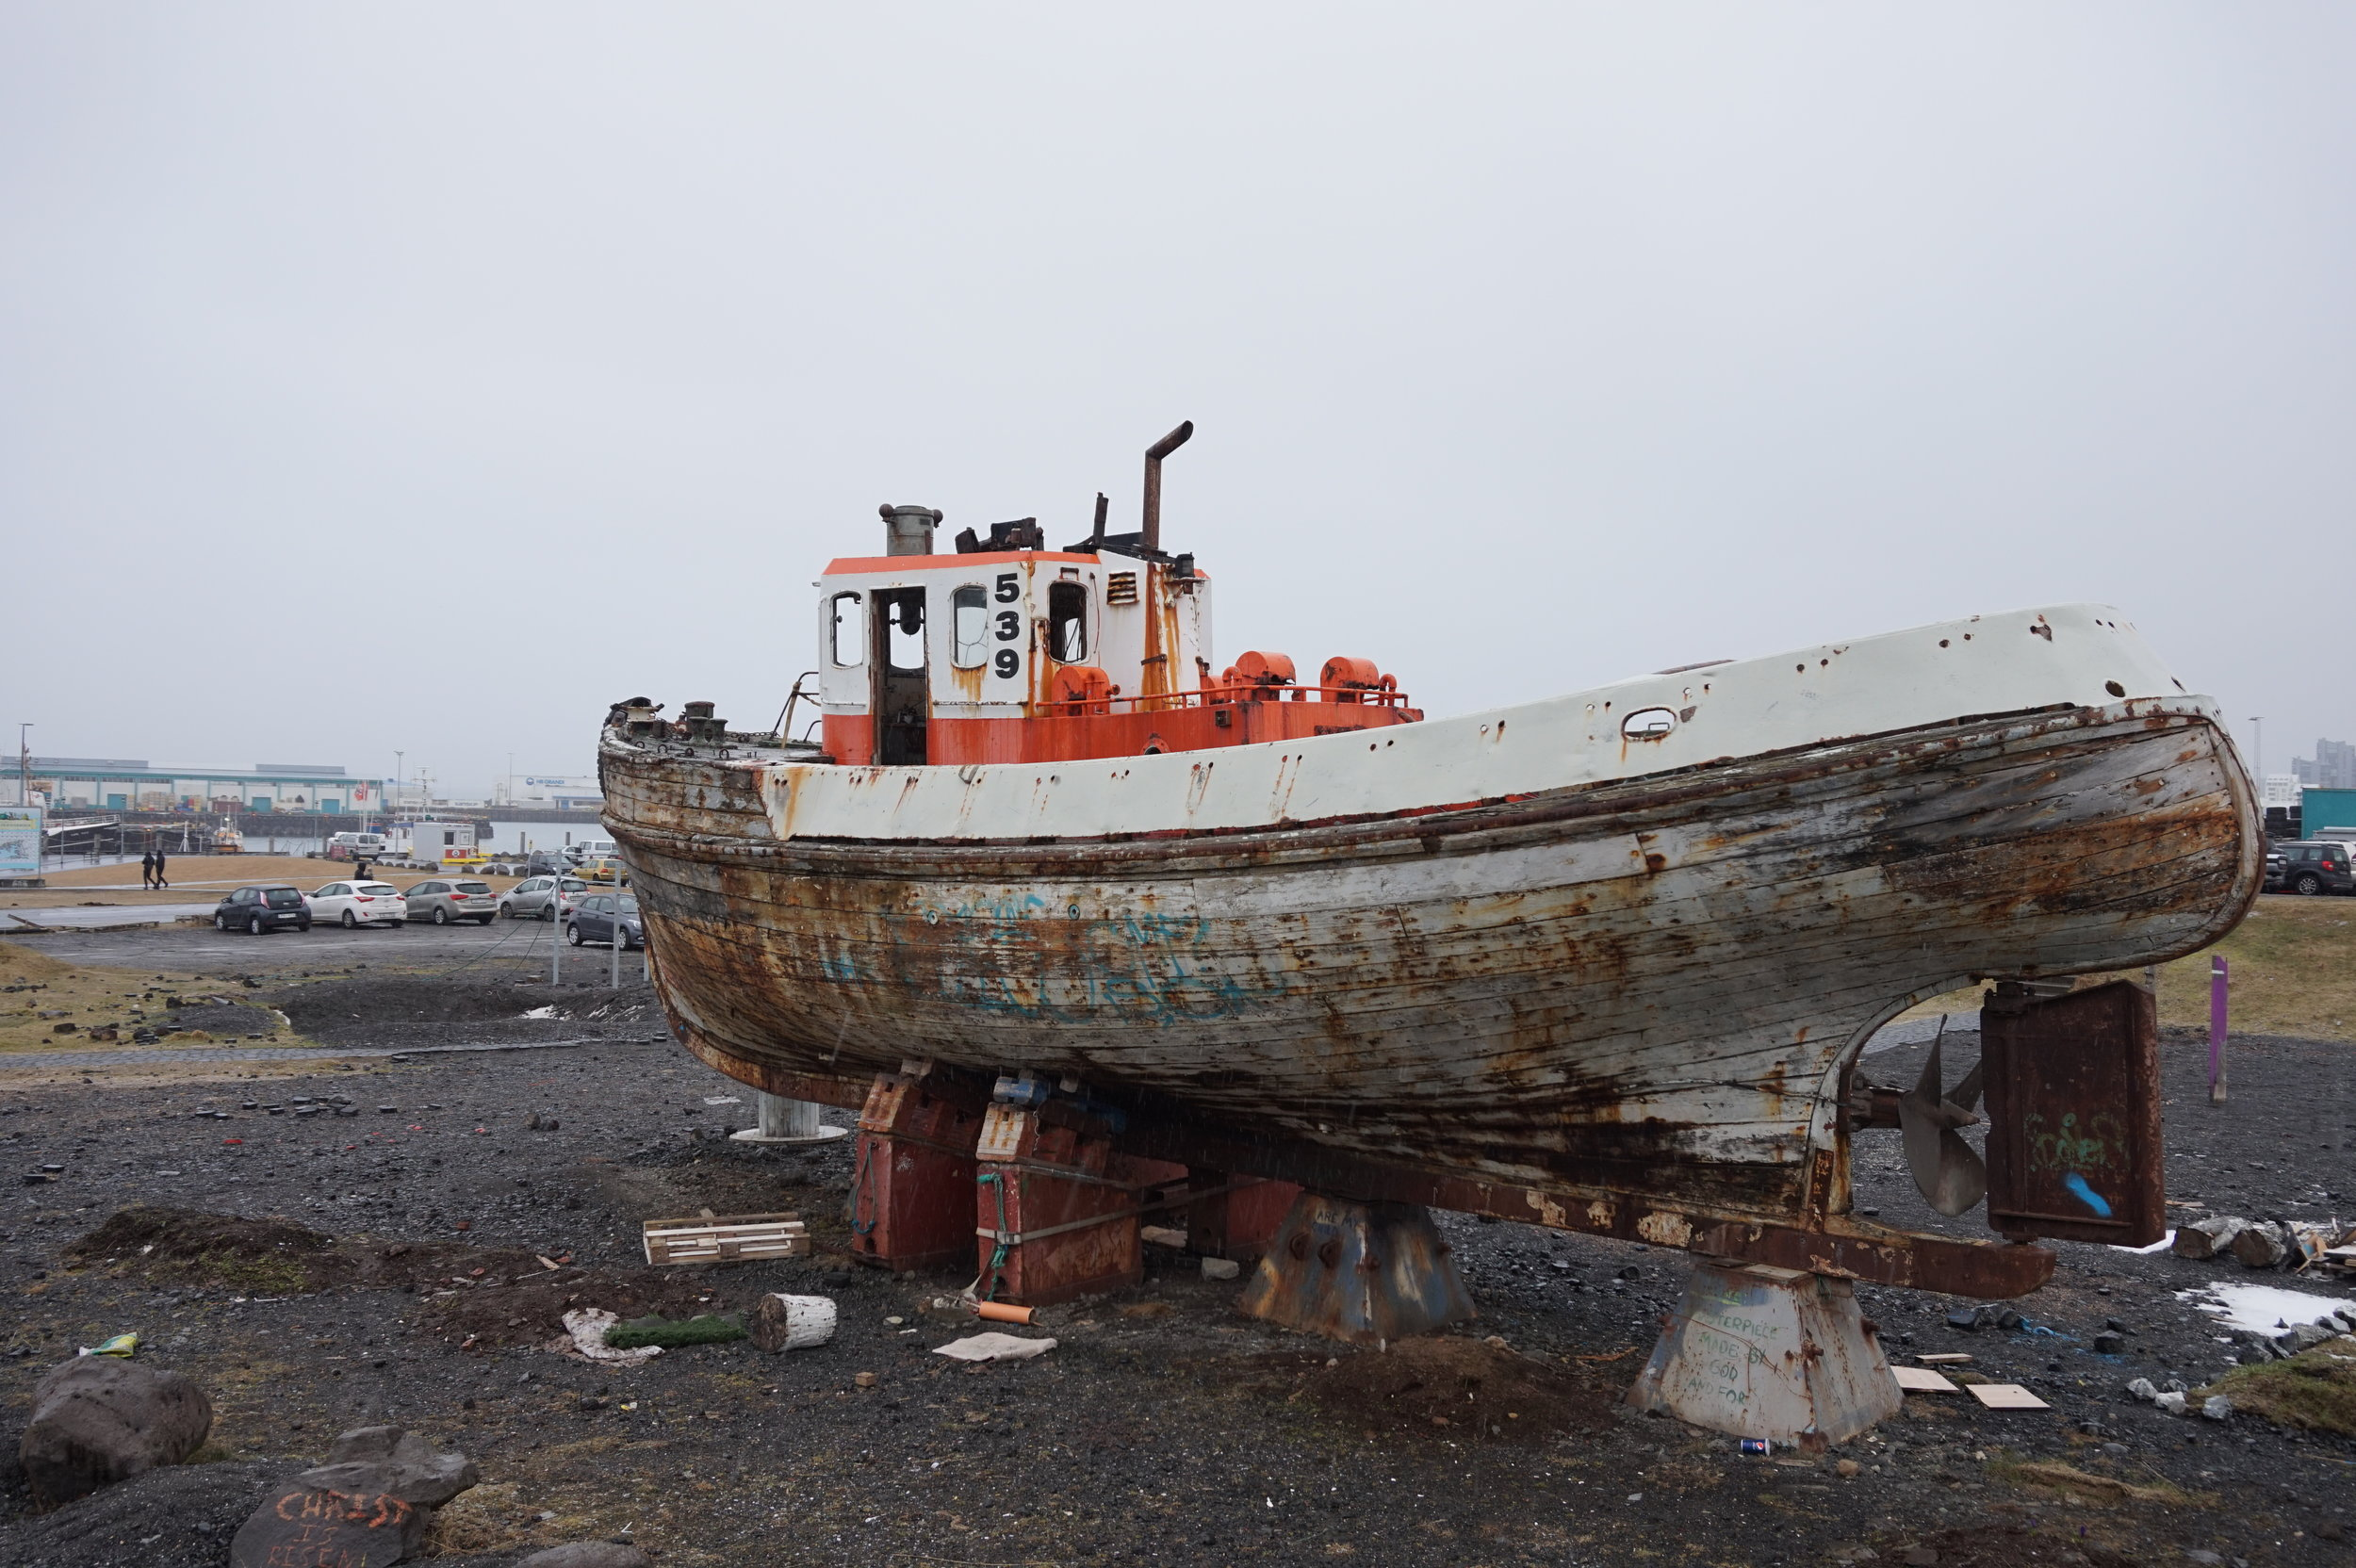 A seemingly abandoned lifeboat near the port.